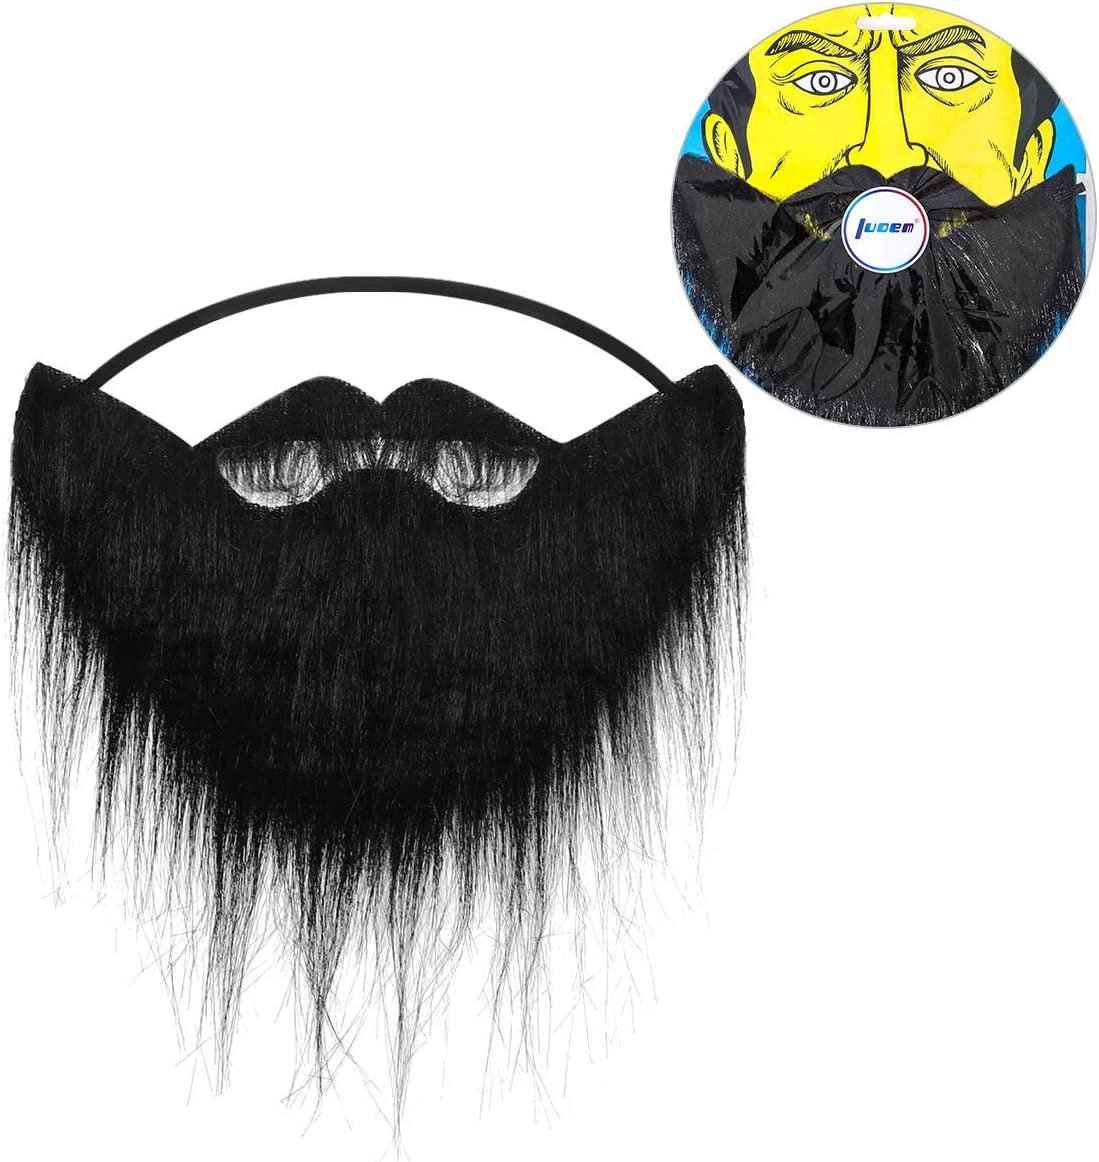 NLSD Funny Costume Party Male Man Halloween Beard Facial Hair Disguise Game Black Mustache